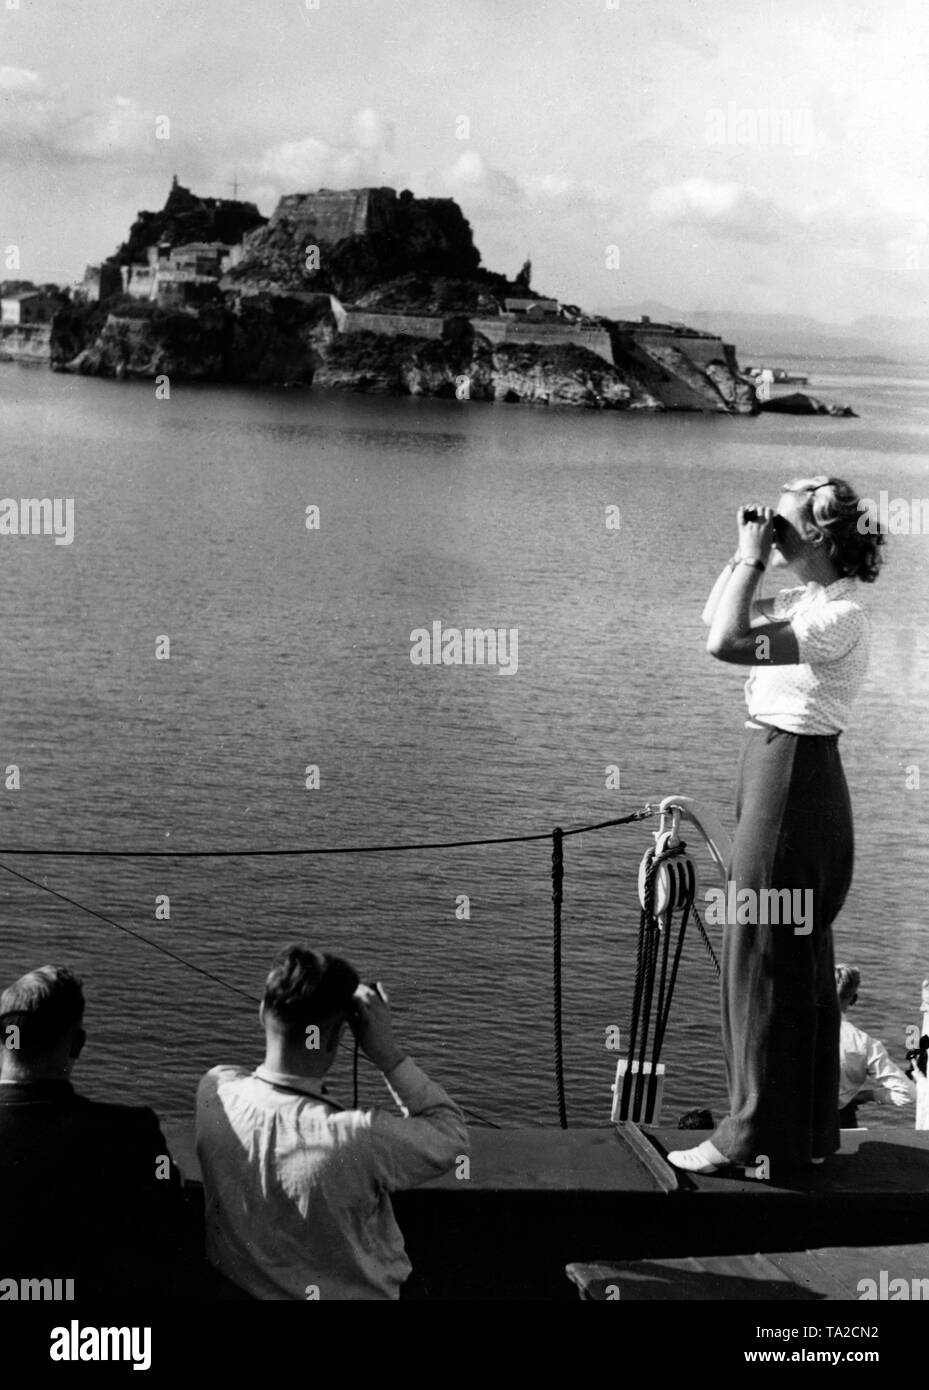 The cruise ship 'Oceana' passes by the island of Corfu on the first sea voyage of the Nazi organization 'Strength through Joy' to Yugoslavia and Greece. The passangers are viewing the island with binoculars. - Stock Image